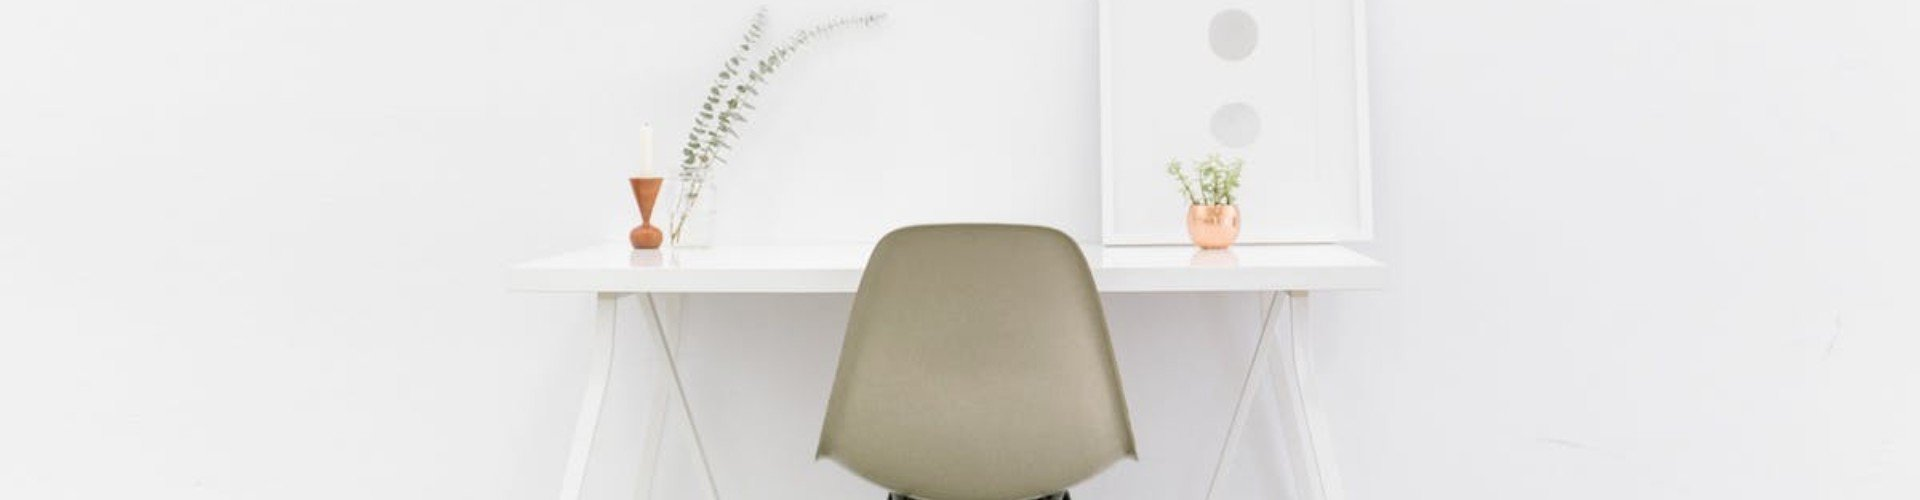 How to Implement the Minimalist Approach to Your Work Life